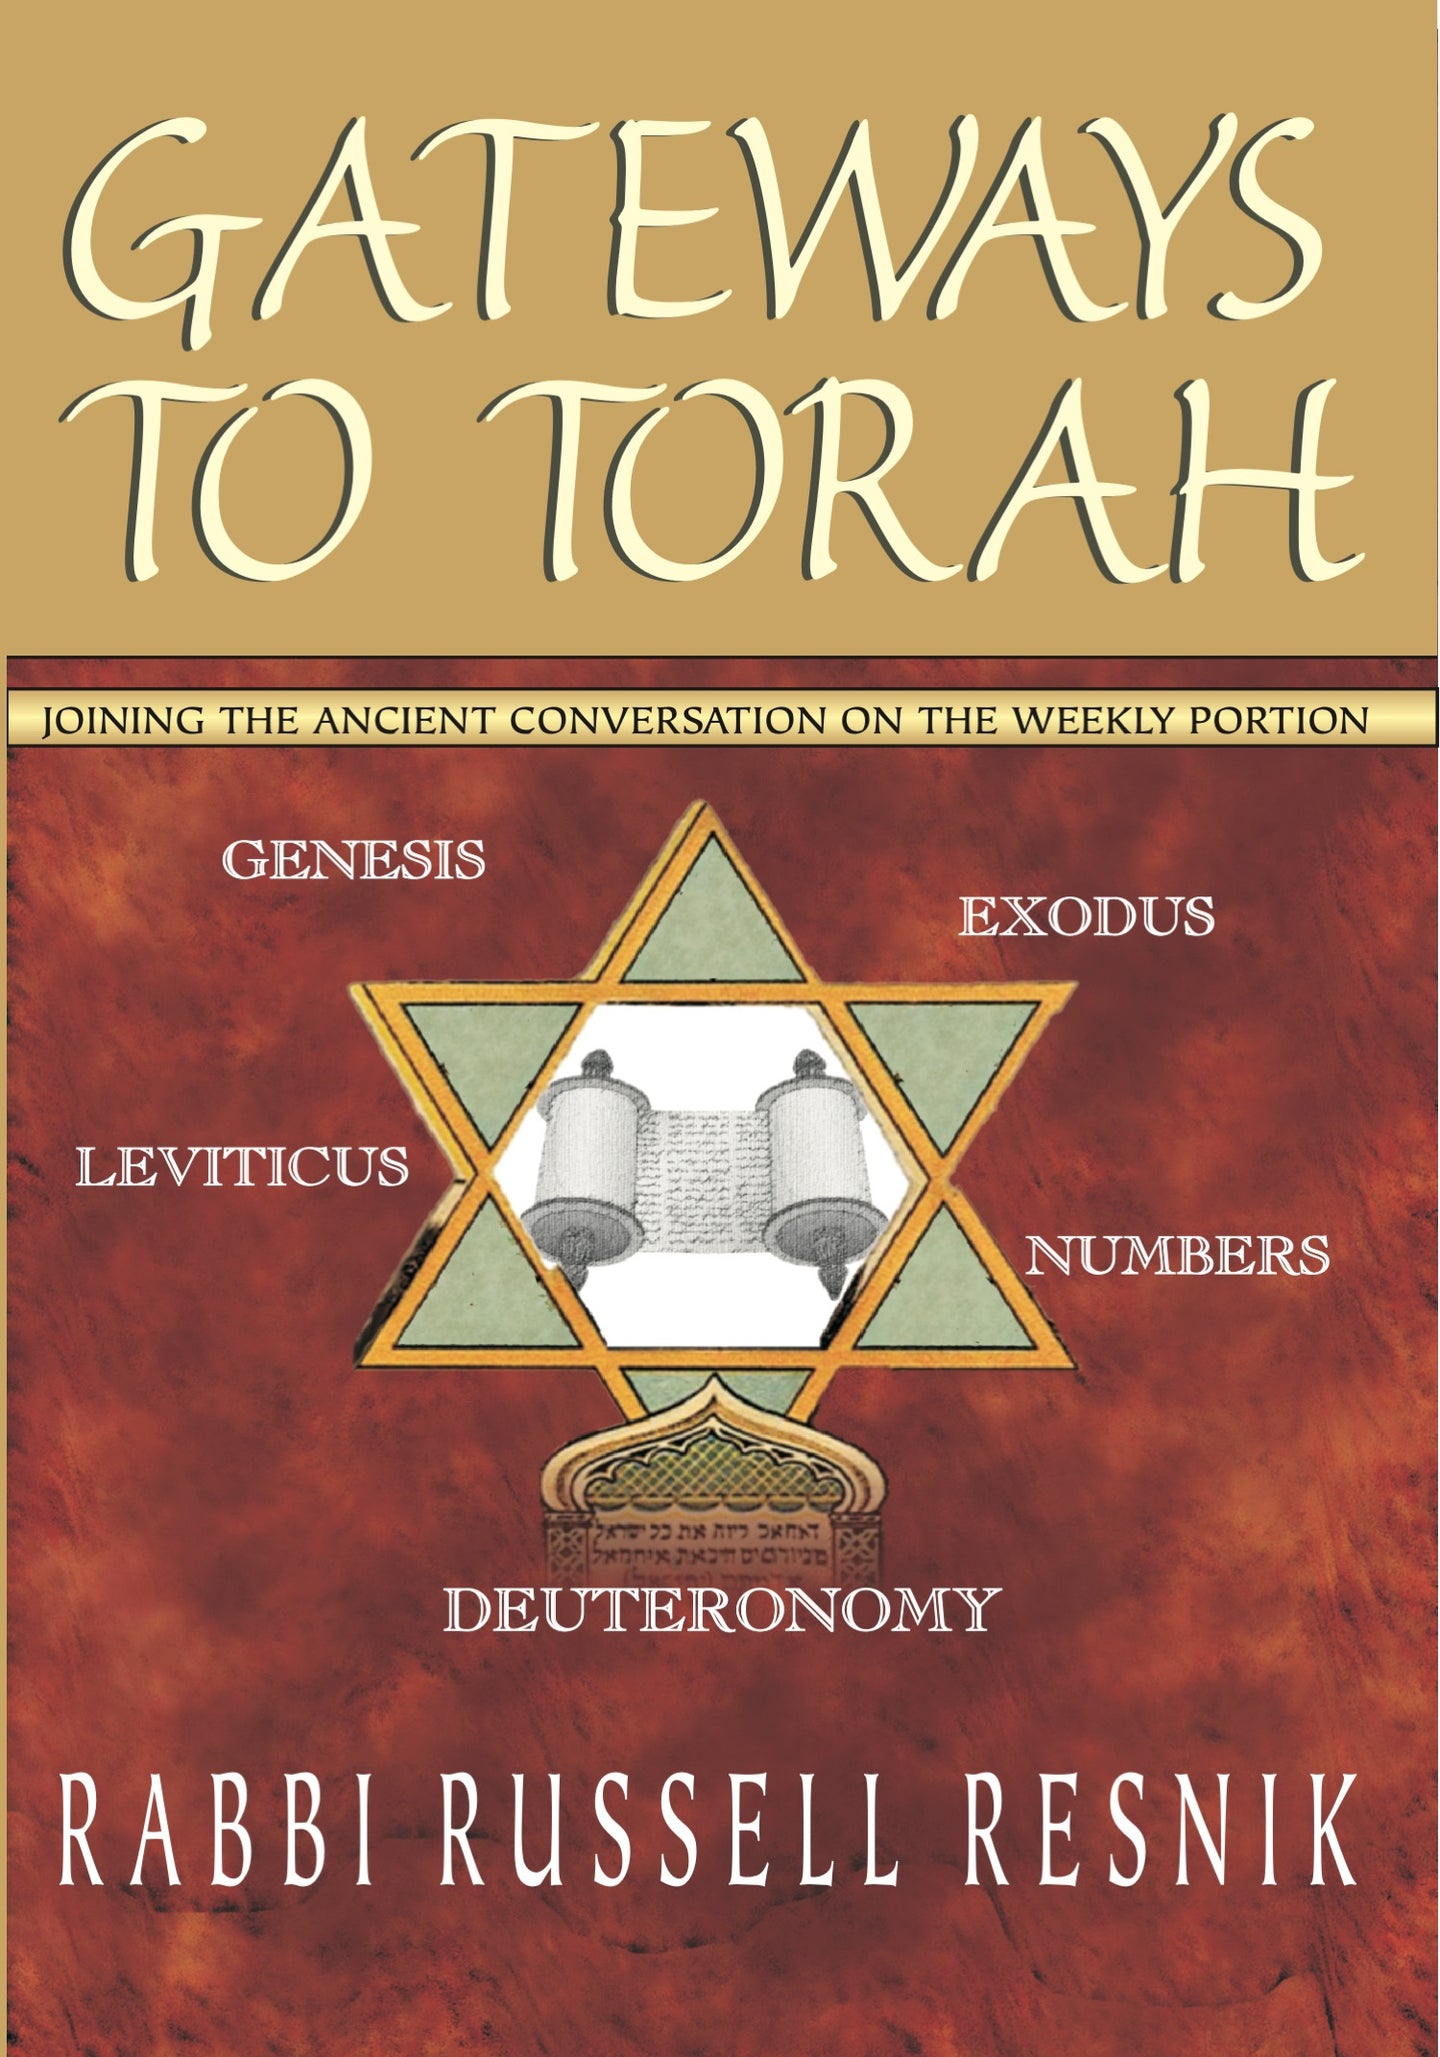 Gateways to Torah: Joining the Ancient Conversation on the Weekly Portion by Rabbi Russell Resnik